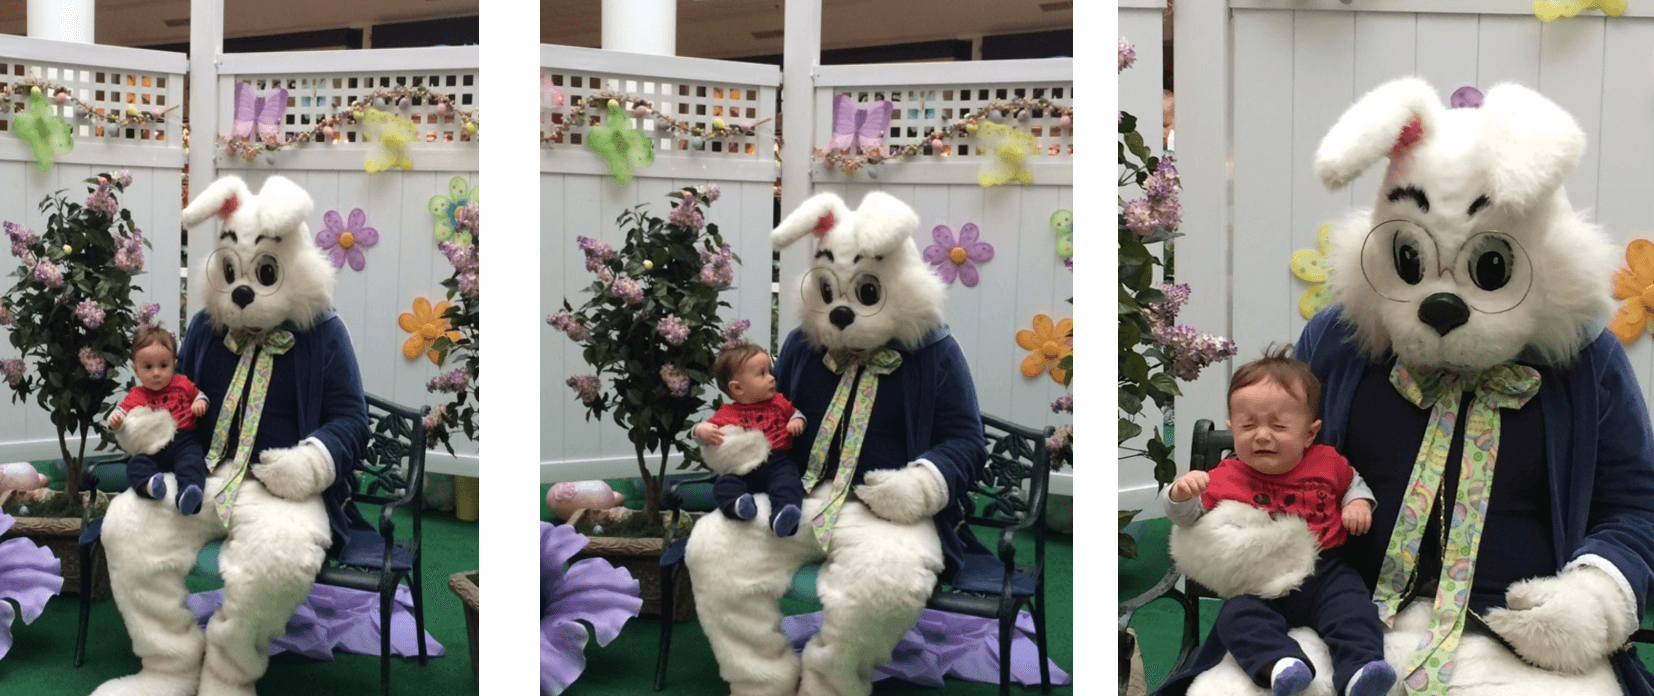 image series showing child being held by a person in an Easter bunny costume and reassessing the situation